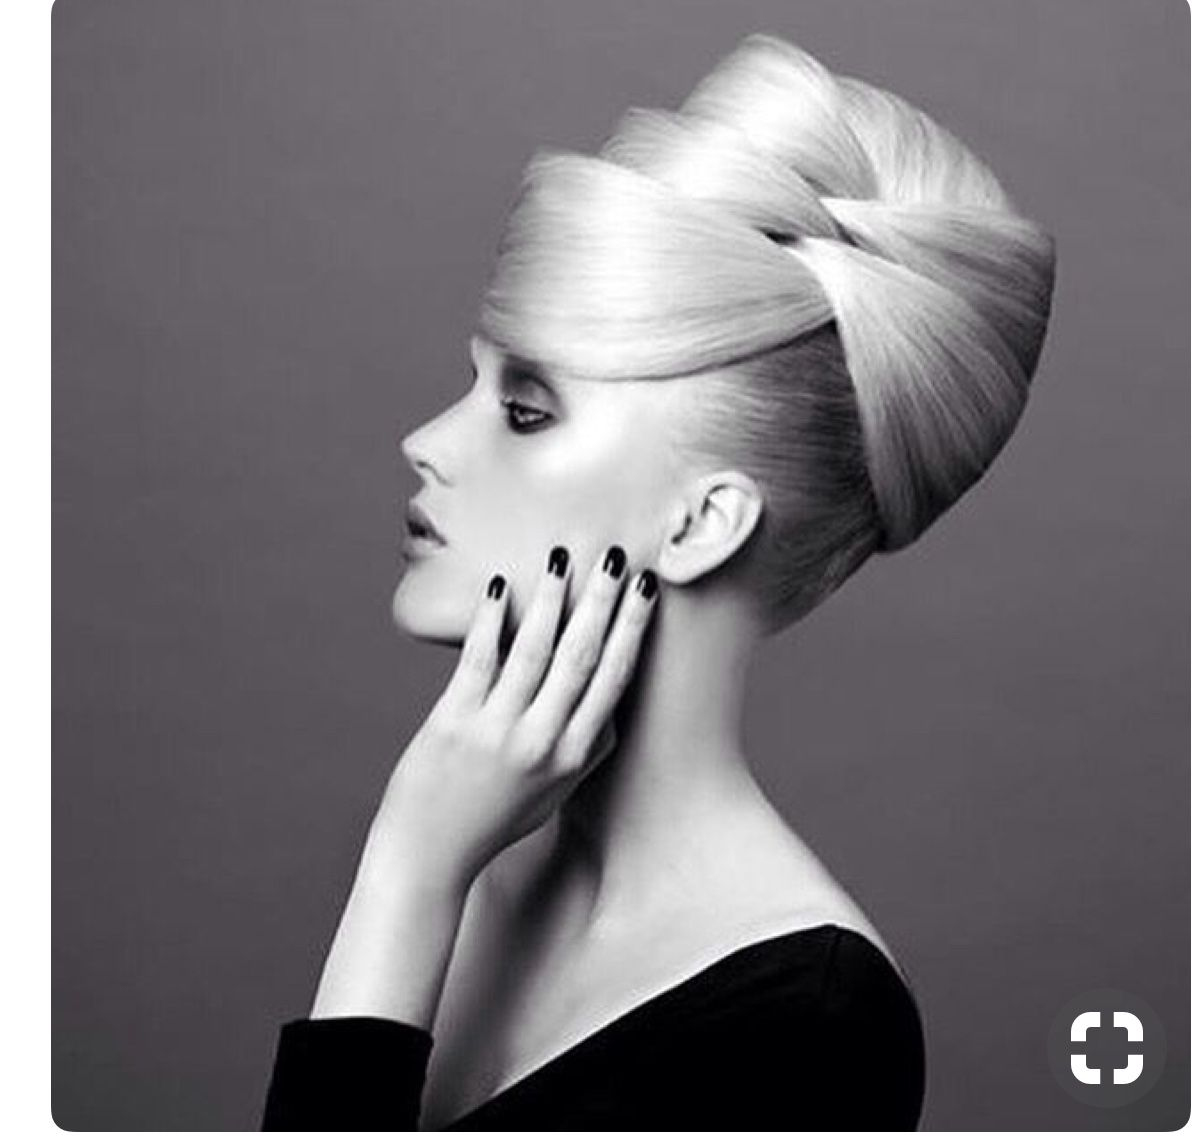 Pin By Javier Herrera On Mane Addicts Shoot Ideas Artistic Hair Editorial Hair Competition Hair